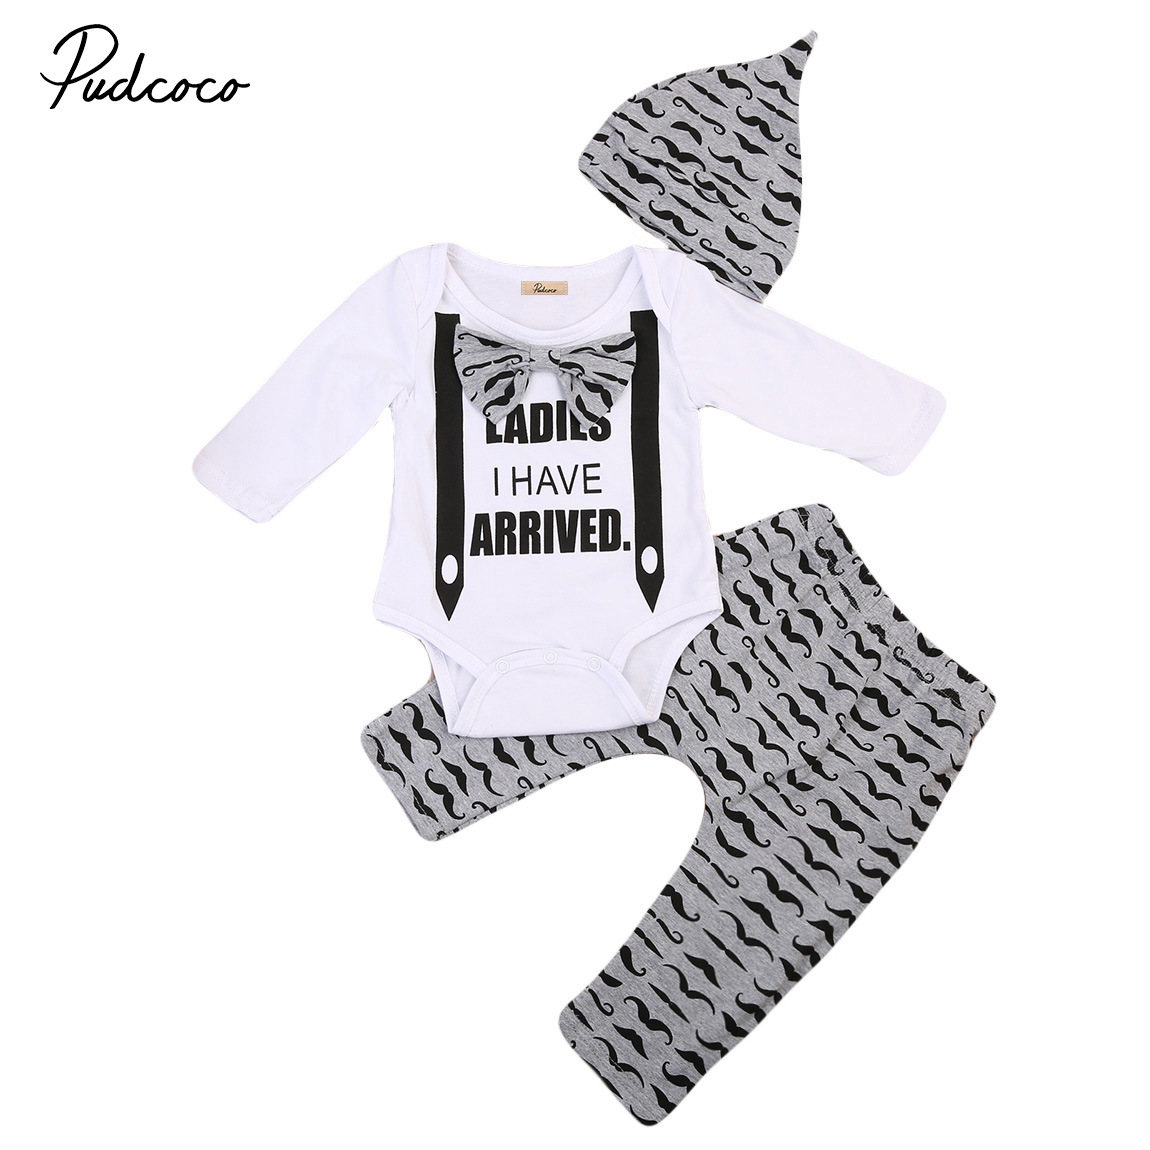 3pcs Newborn Babys Outfits Sets Toddler Baby Boy Long Sleeve Romper Animal Print Baby Jumper Long Pants Cute Warm Hats Clothes